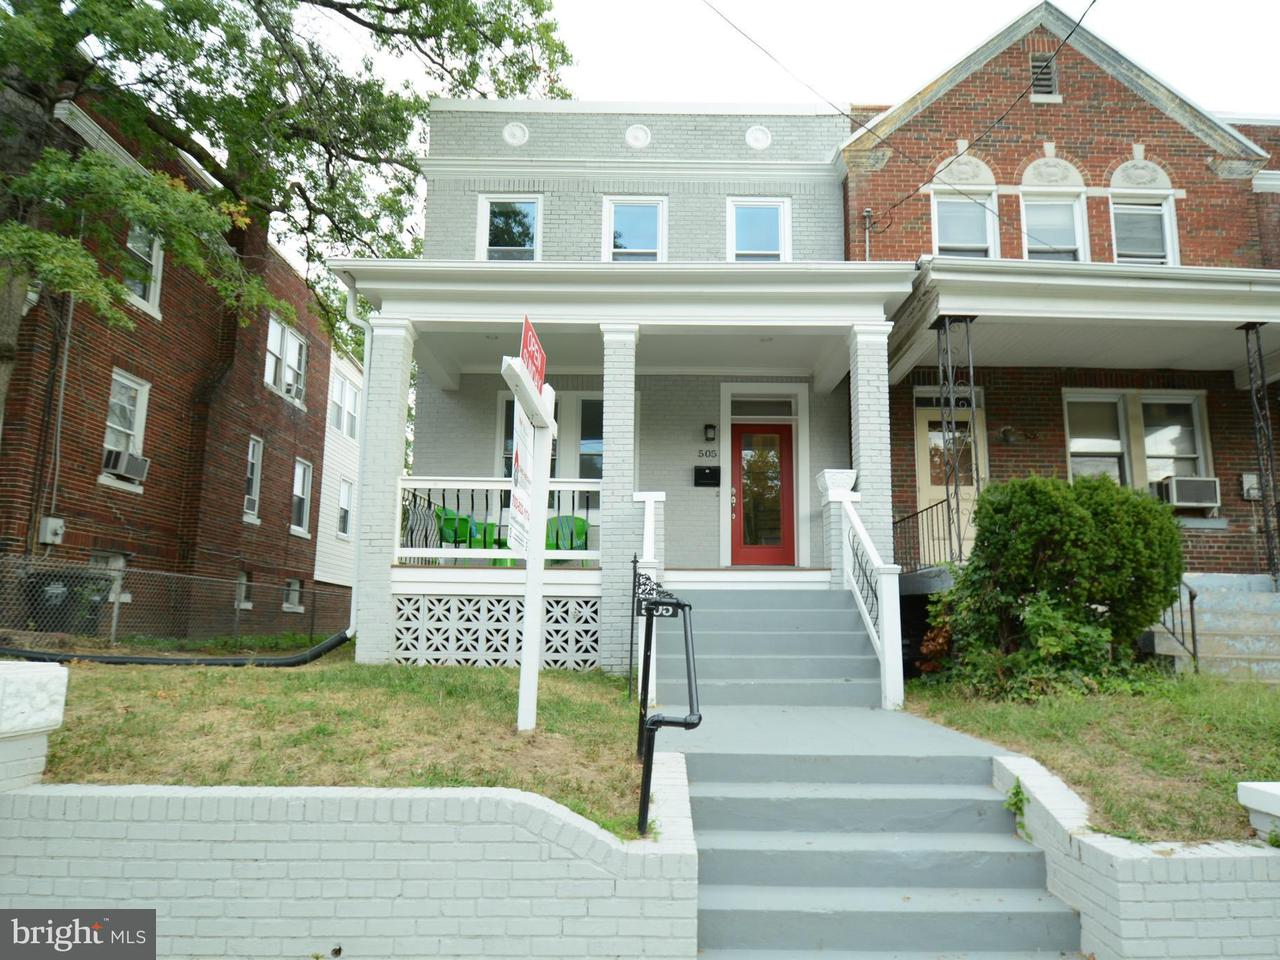 Townhouse for Sale at 505 MADISON ST NW 505 MADISON ST NW Washington, District Of Columbia 20011 United States